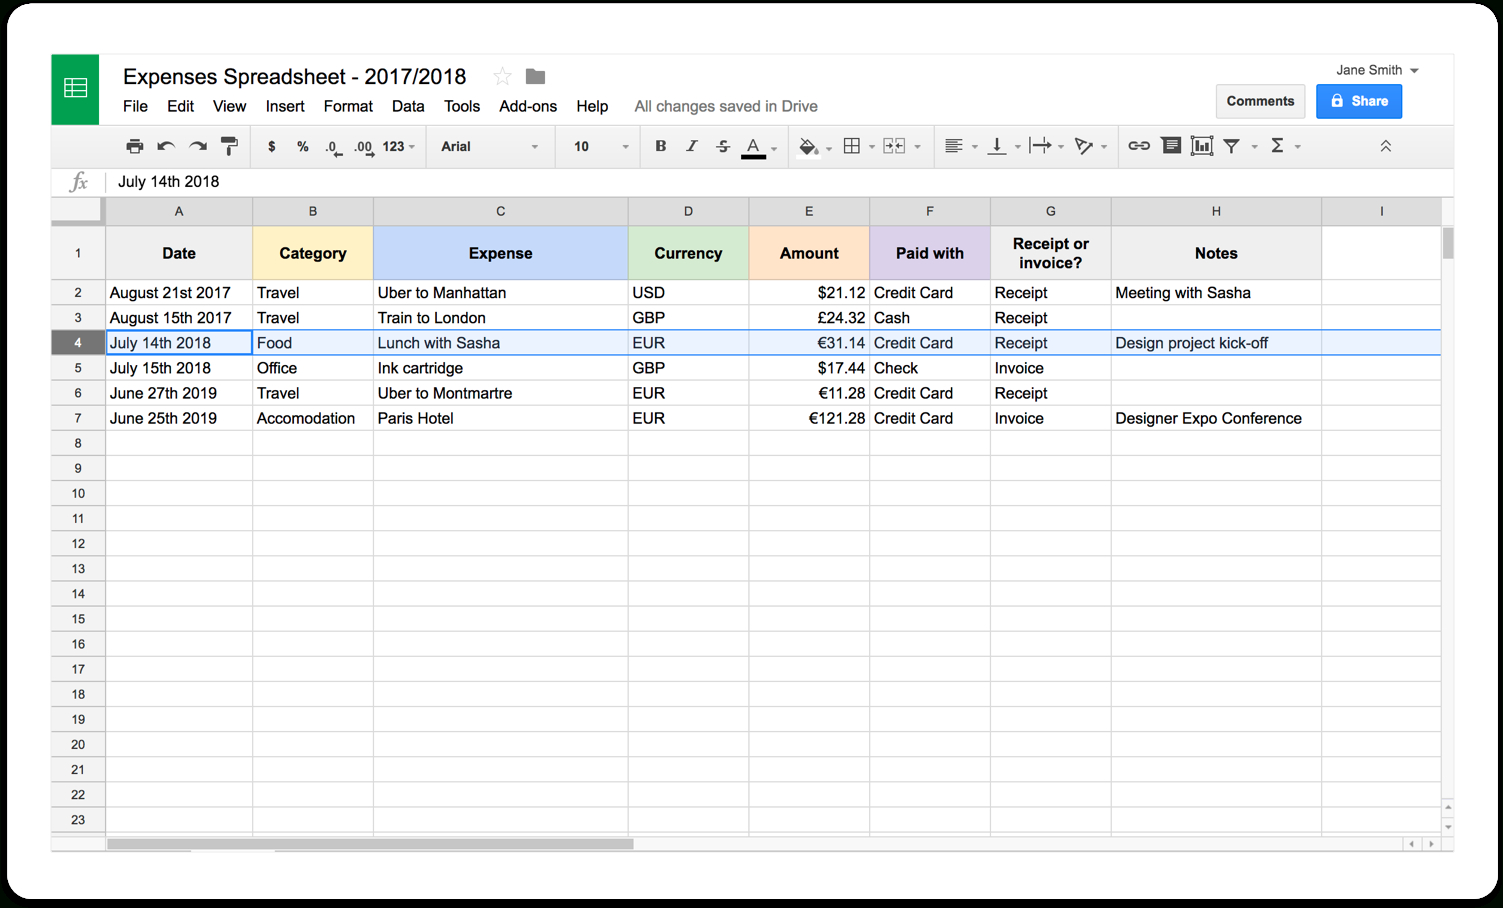 Tax Deduction Tracker Spreadsheet Throughout Selfemployed Expenses Spreadsheet